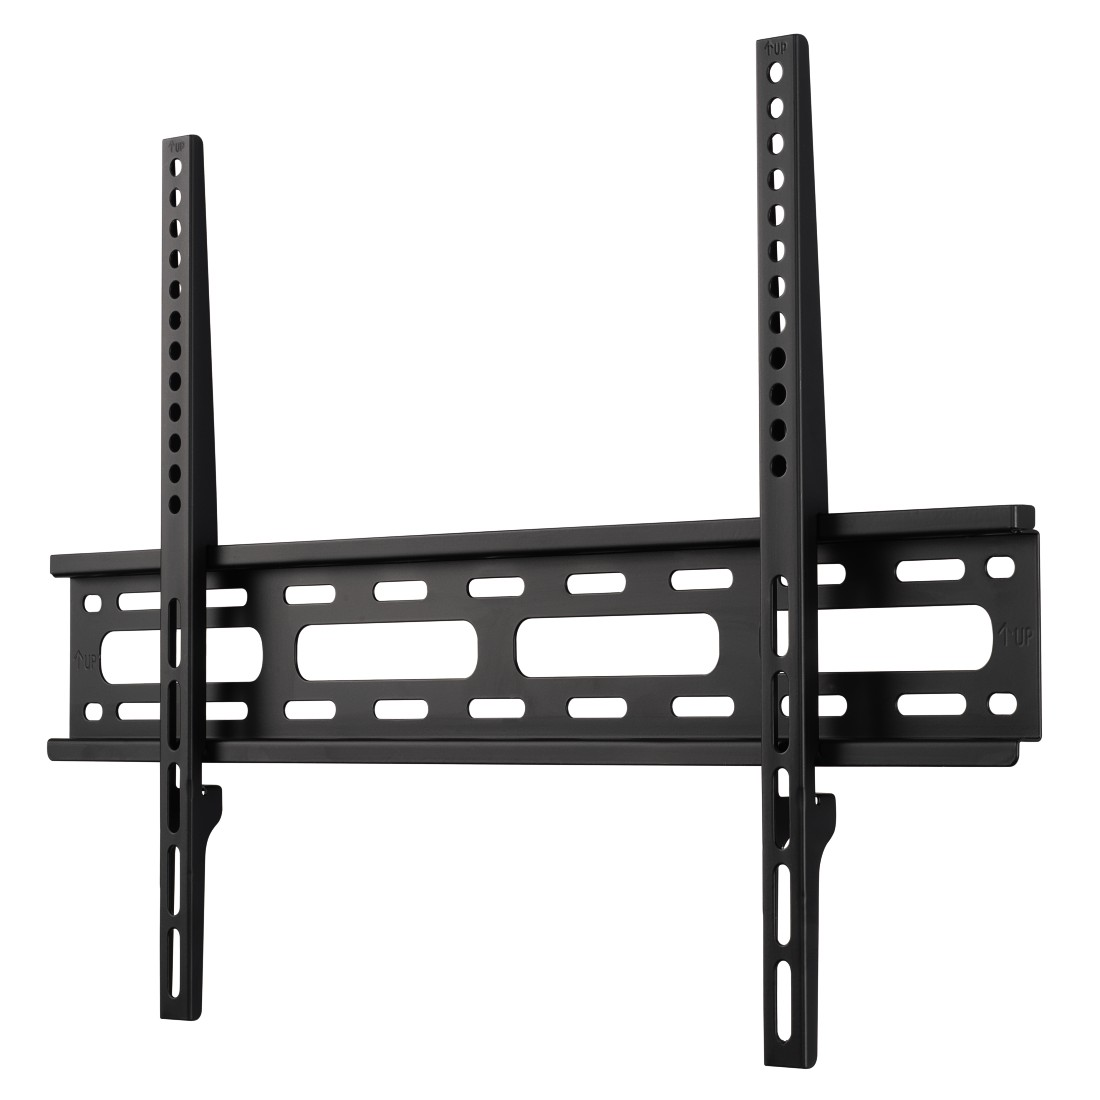 "Hama Fix TV Wall Bracket 1 star XL 165 cm (65"") Black"